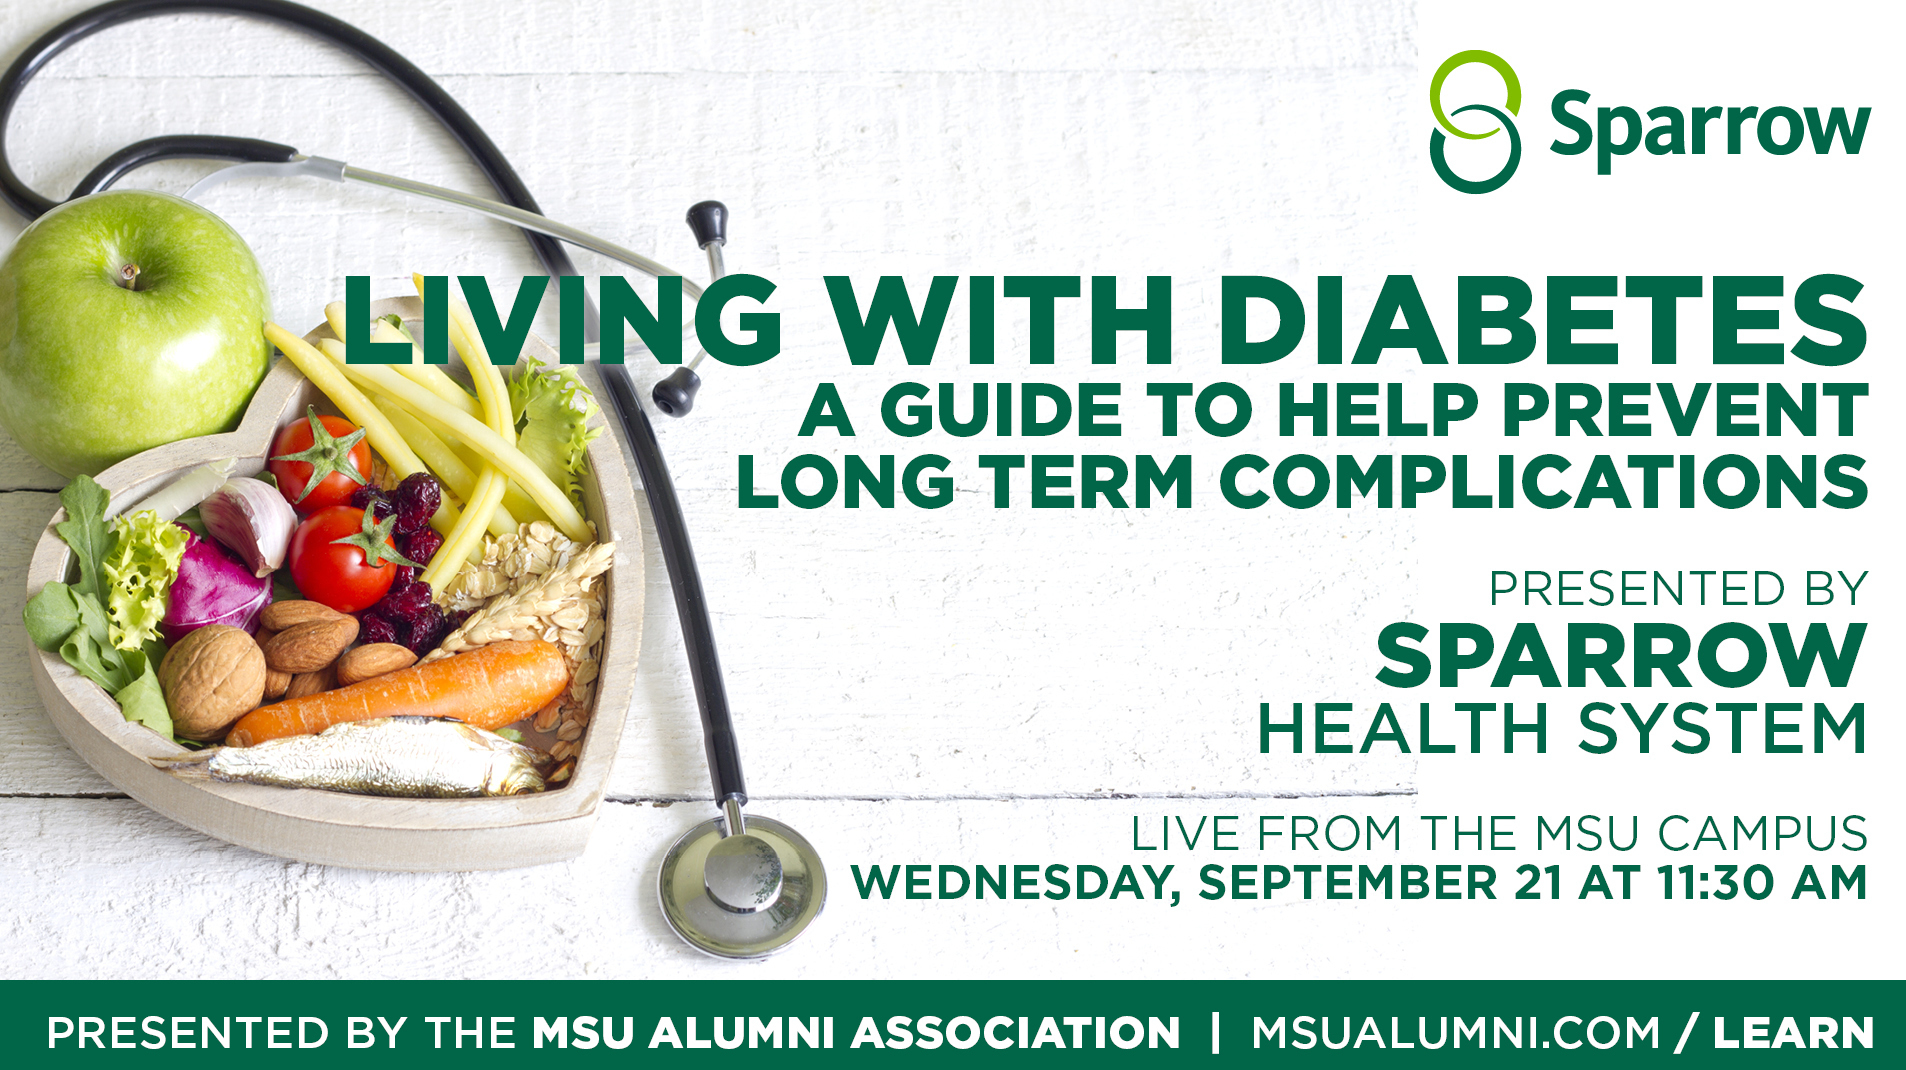 livestream cover image for Sparrow | Living With Diabetes, A Guide to Help Prevent Long Term Complications